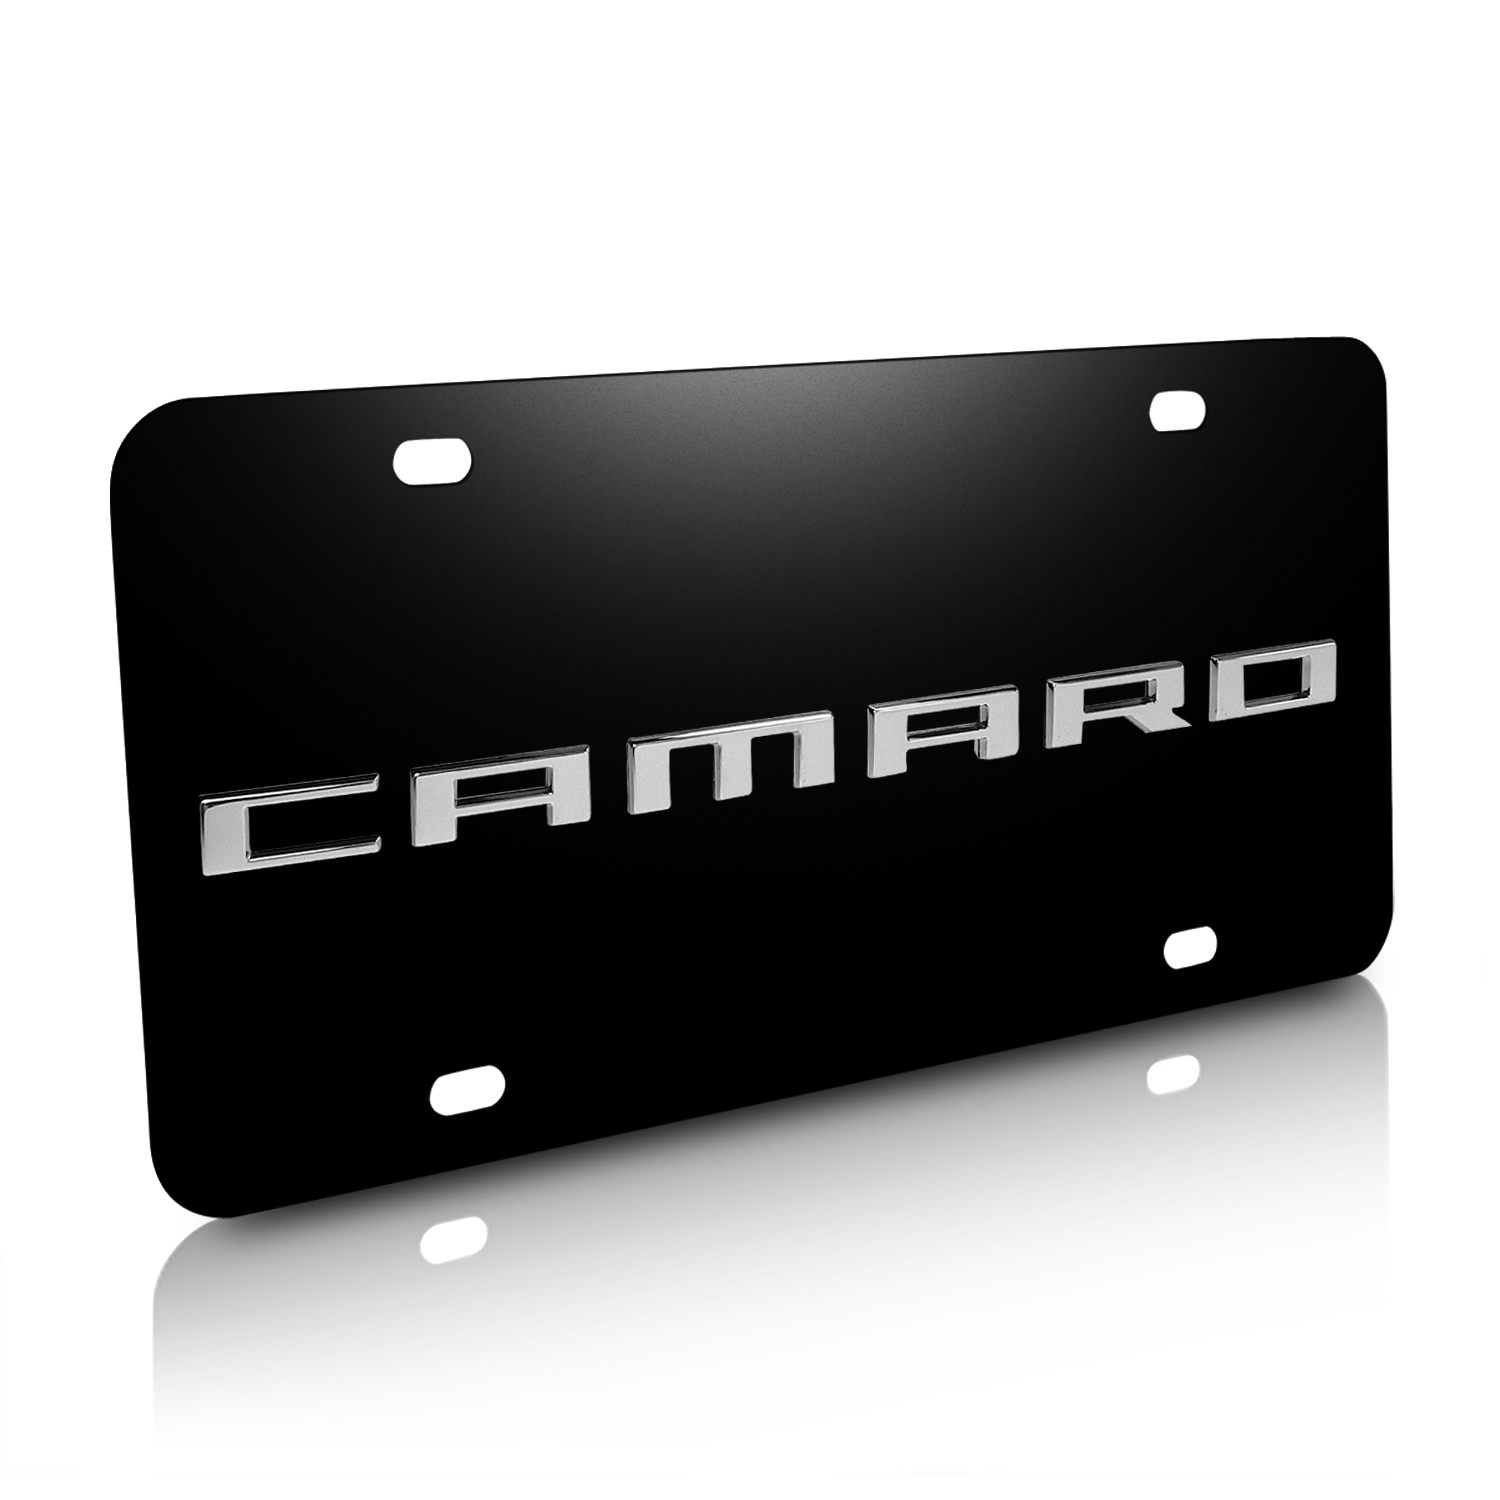 Chevrolet Camaro Nameplate 3D Logo Black Stainless Steel License Plate